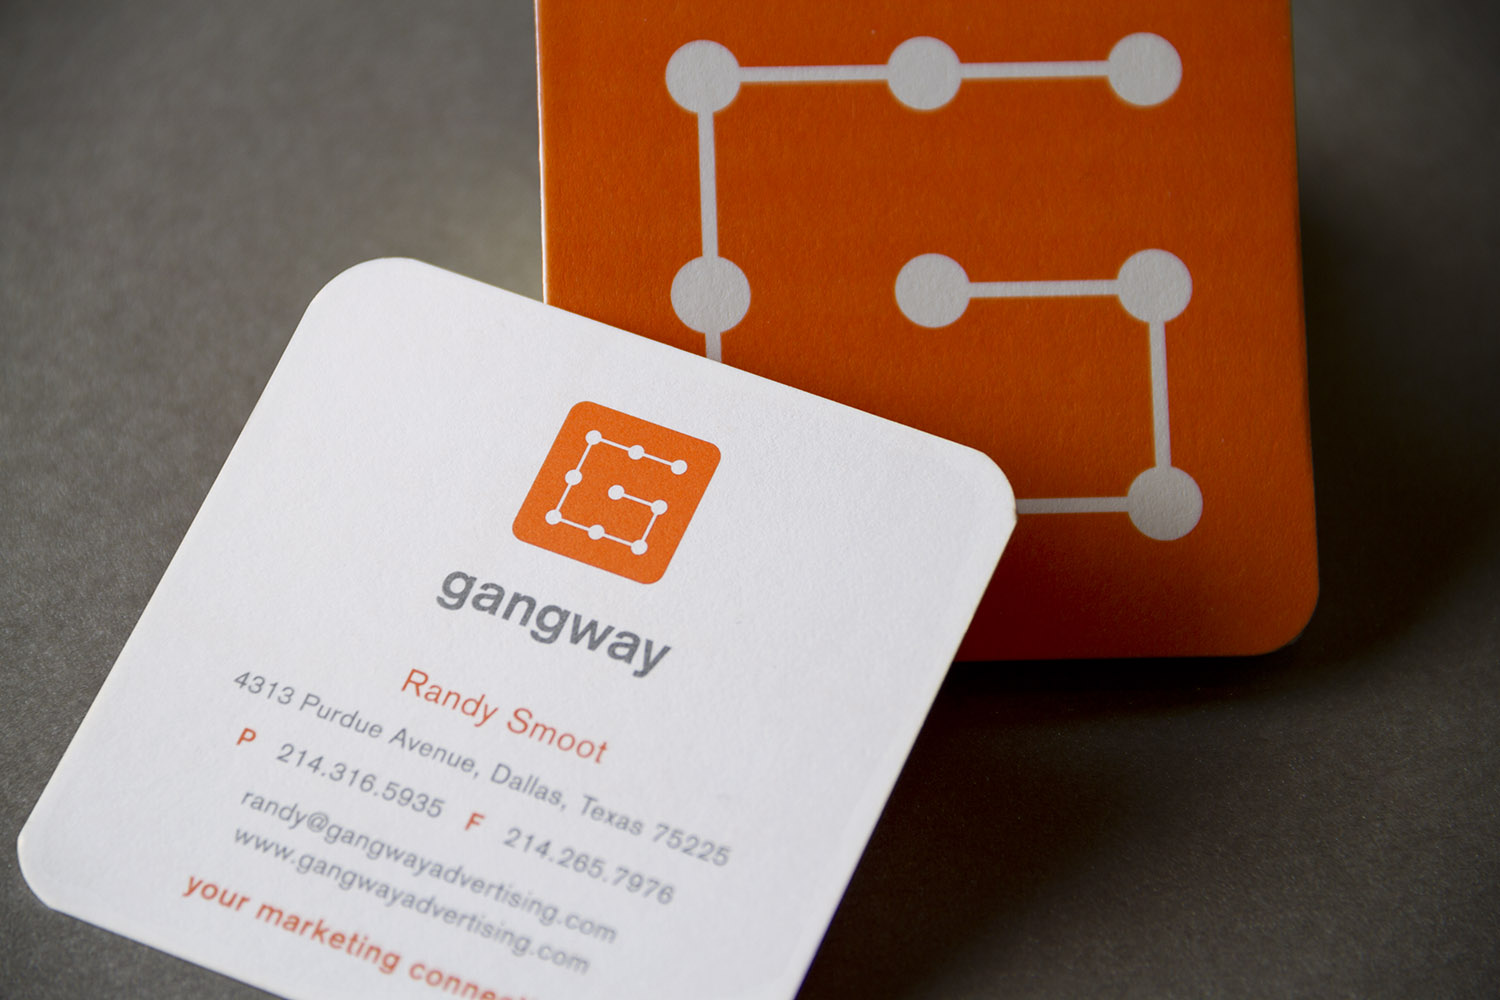 Gangway Business Collateral